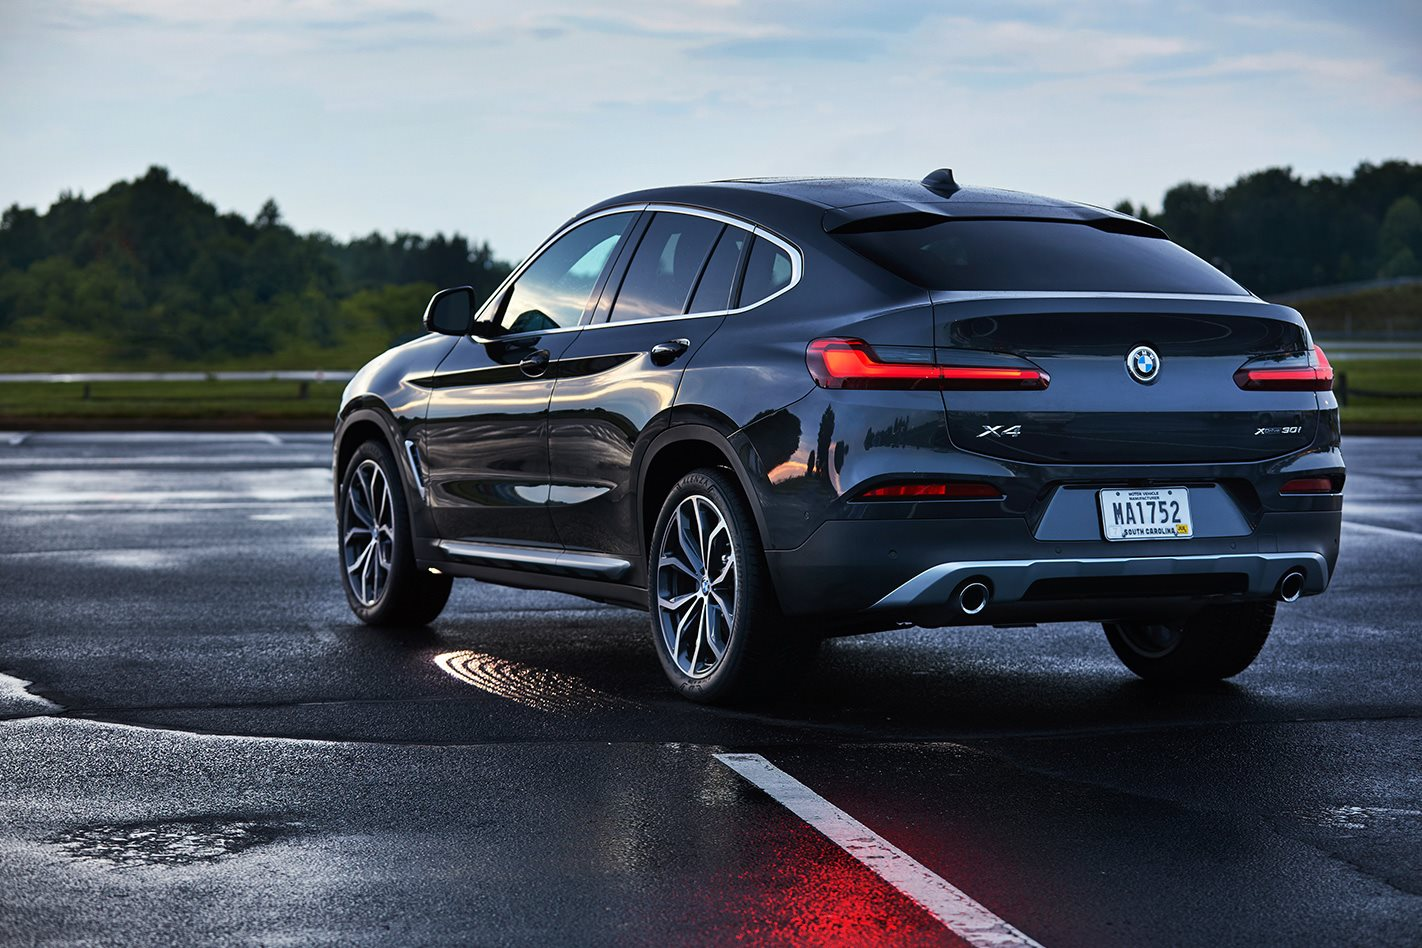 2019 Bmw X4 Pricing And Features